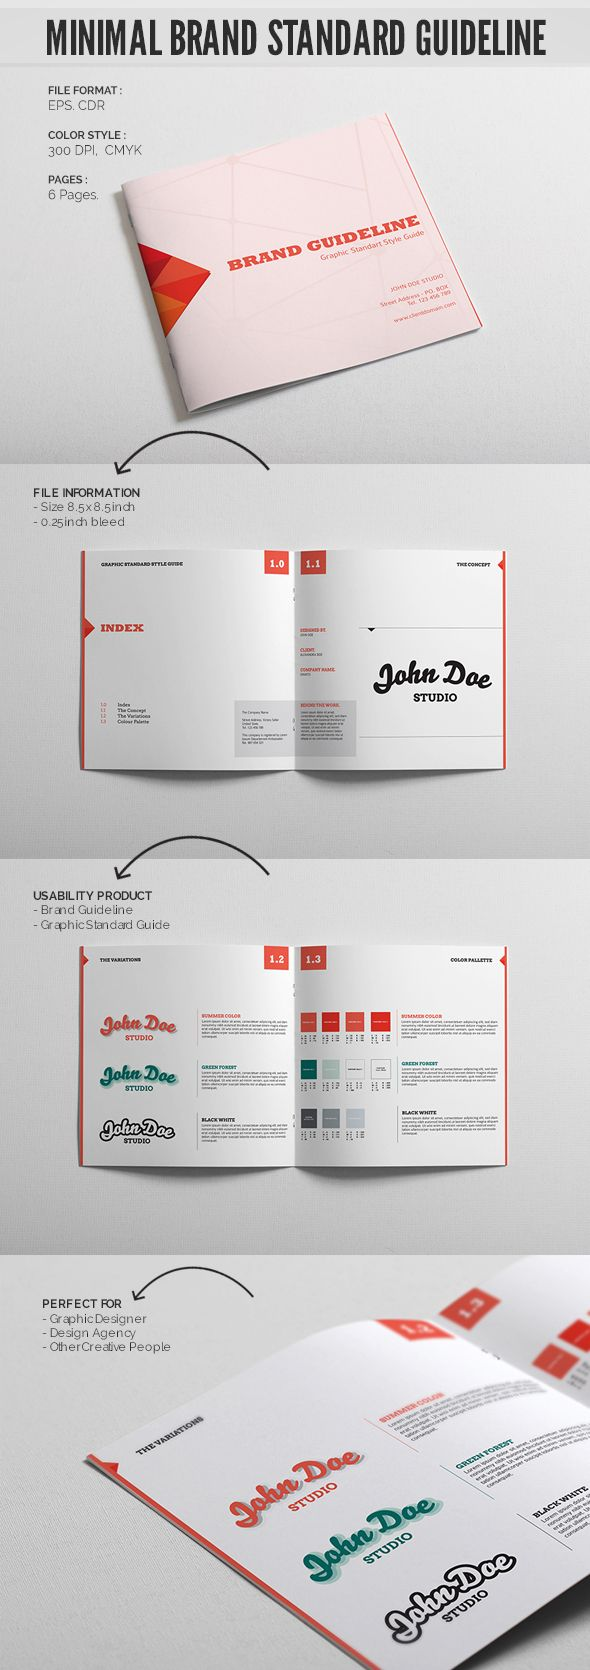 Minimal Brand Standard Guideline Template  Brand Guidelines